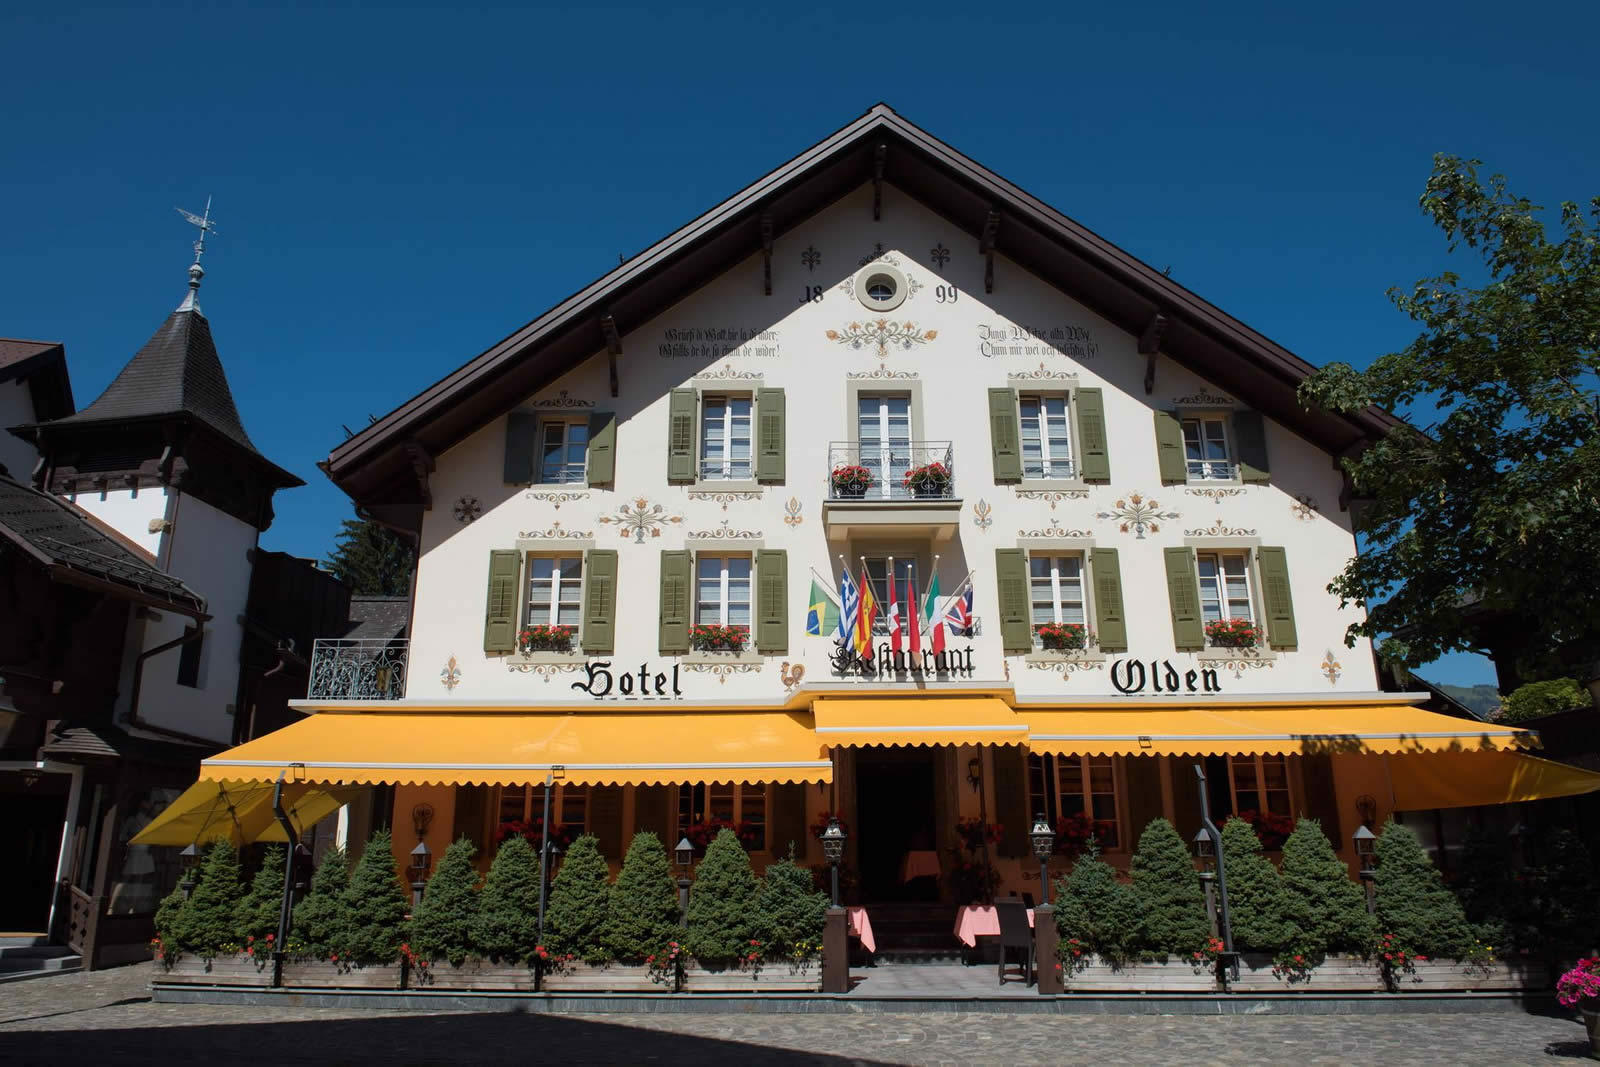 hotel-olden-chalet-restaurant-tradition